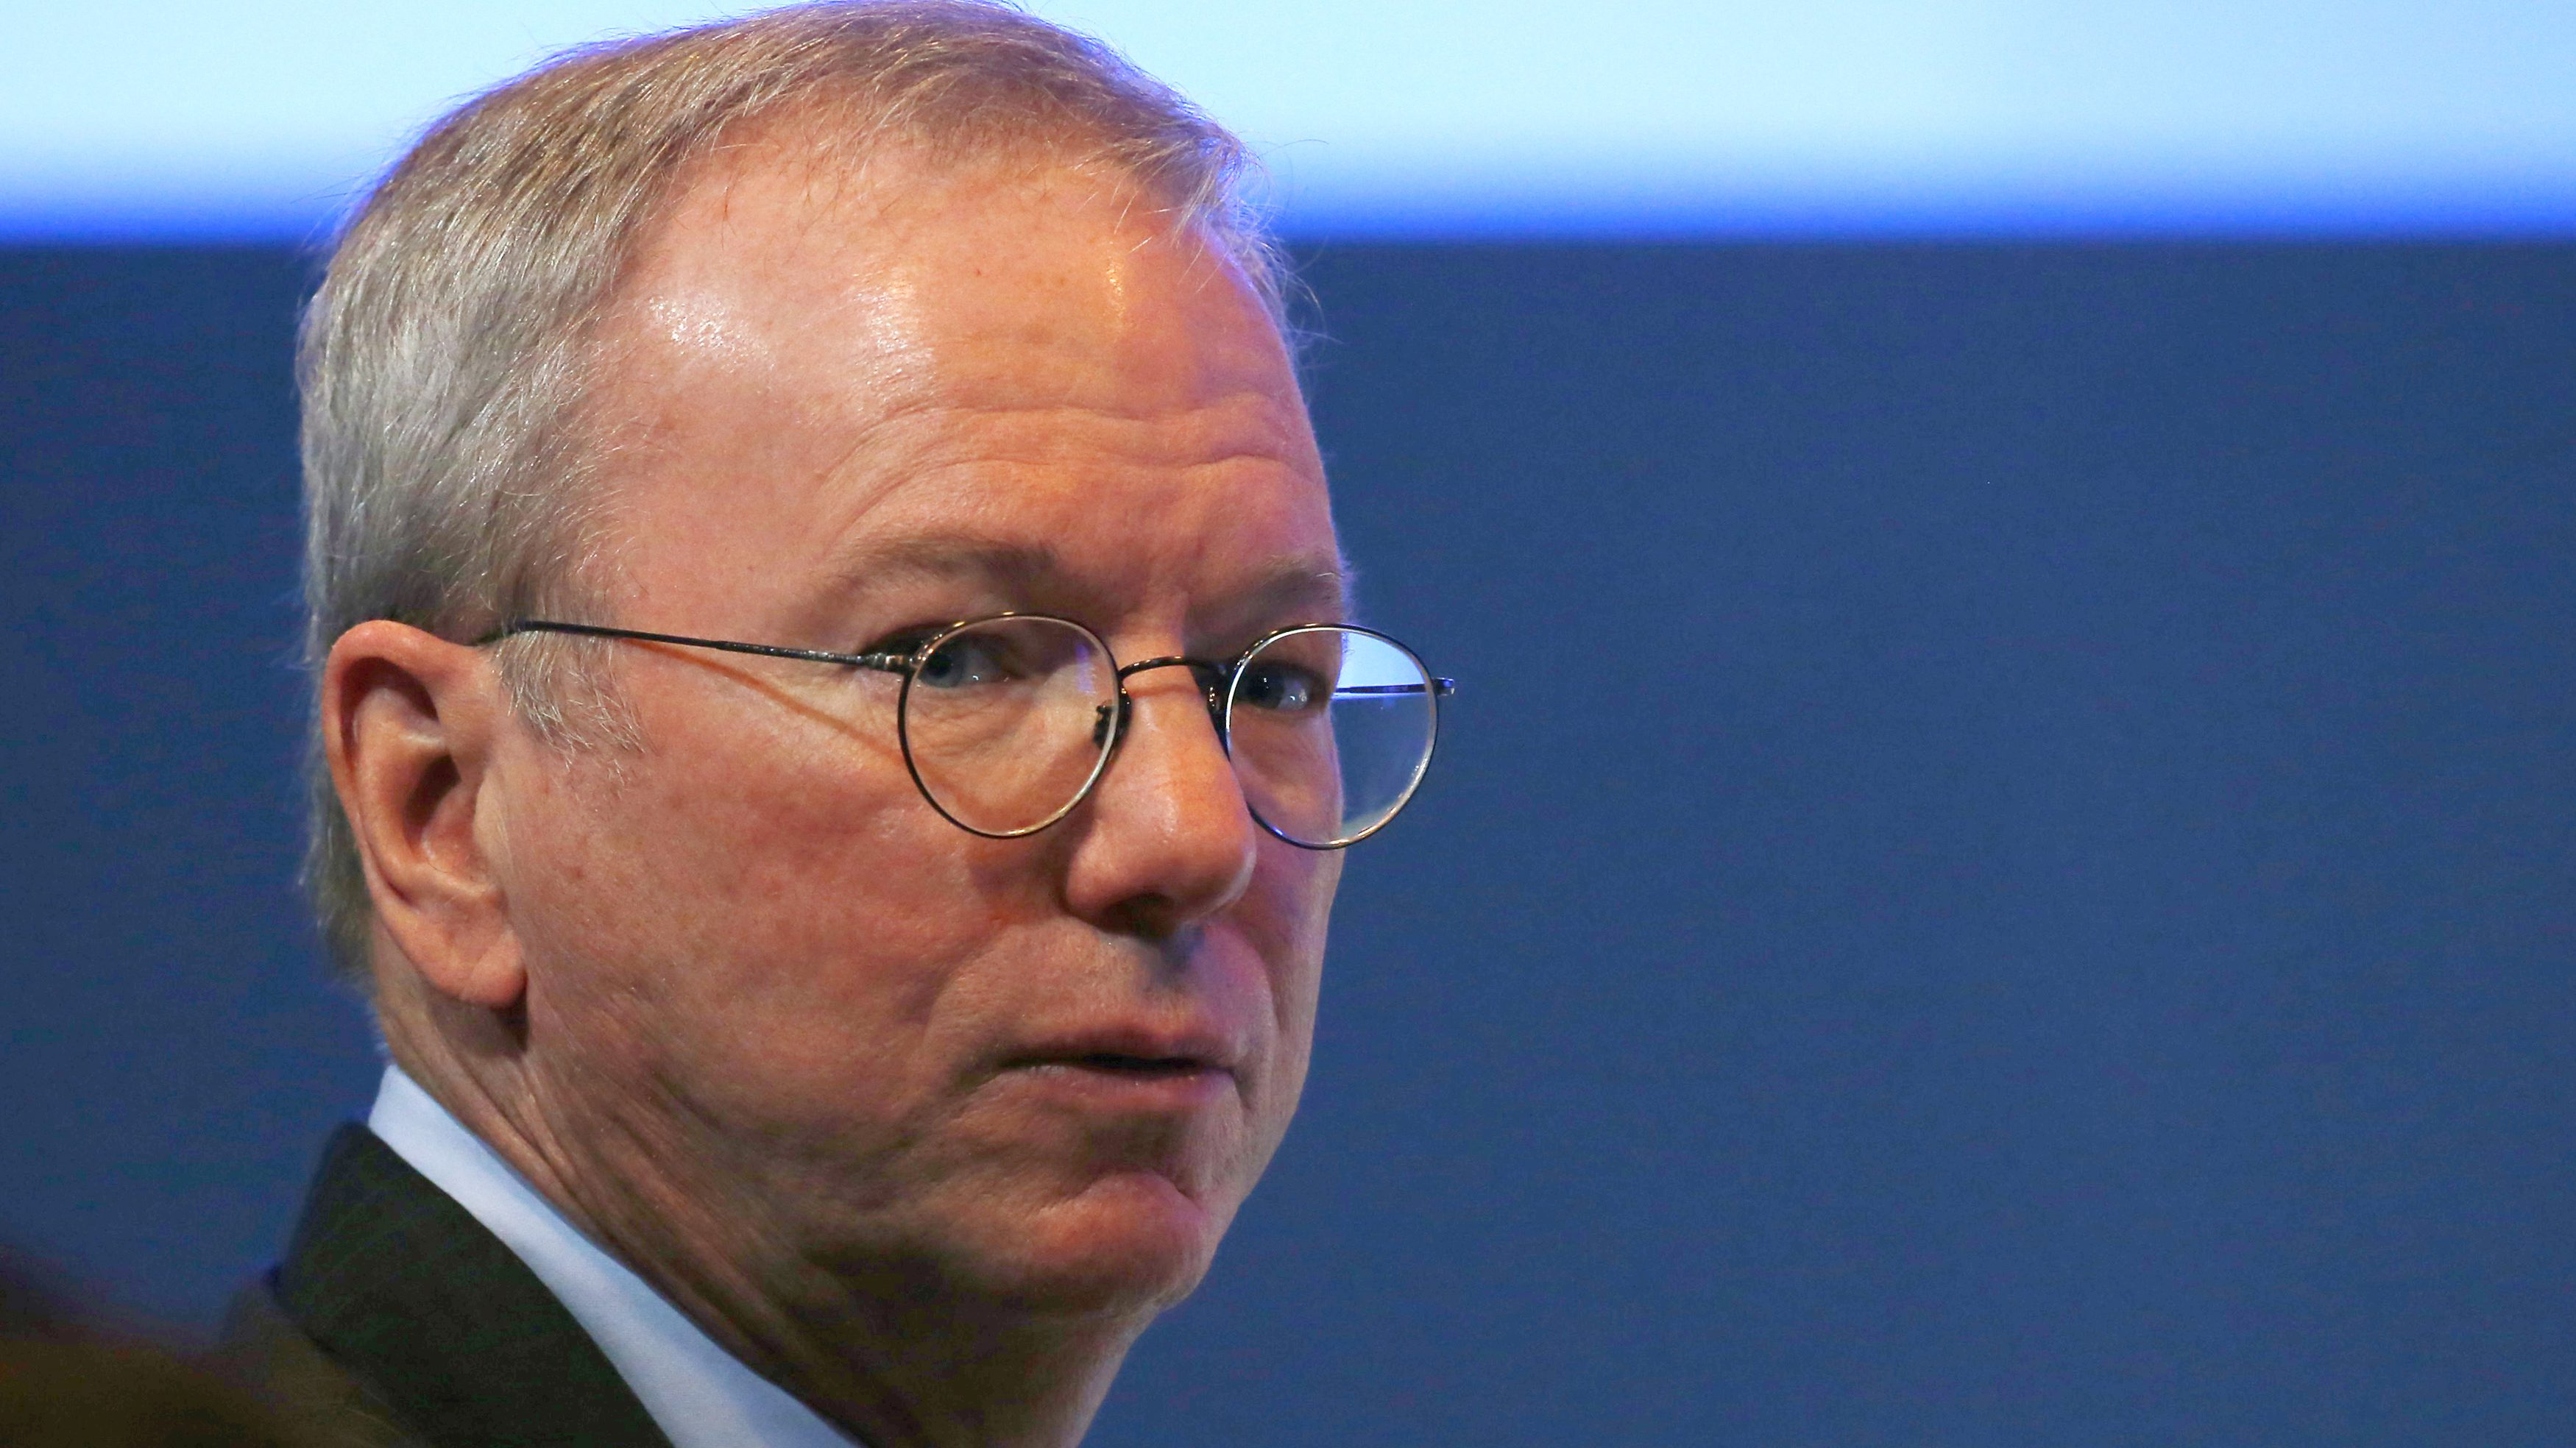 Eric Schmidt, former CEO of Google attends the World Economic Forum (WEF) annual meeting in Davos, Switzerland January 19, 2017.  REUTERS/Ruben Sprich - RTSW9JV